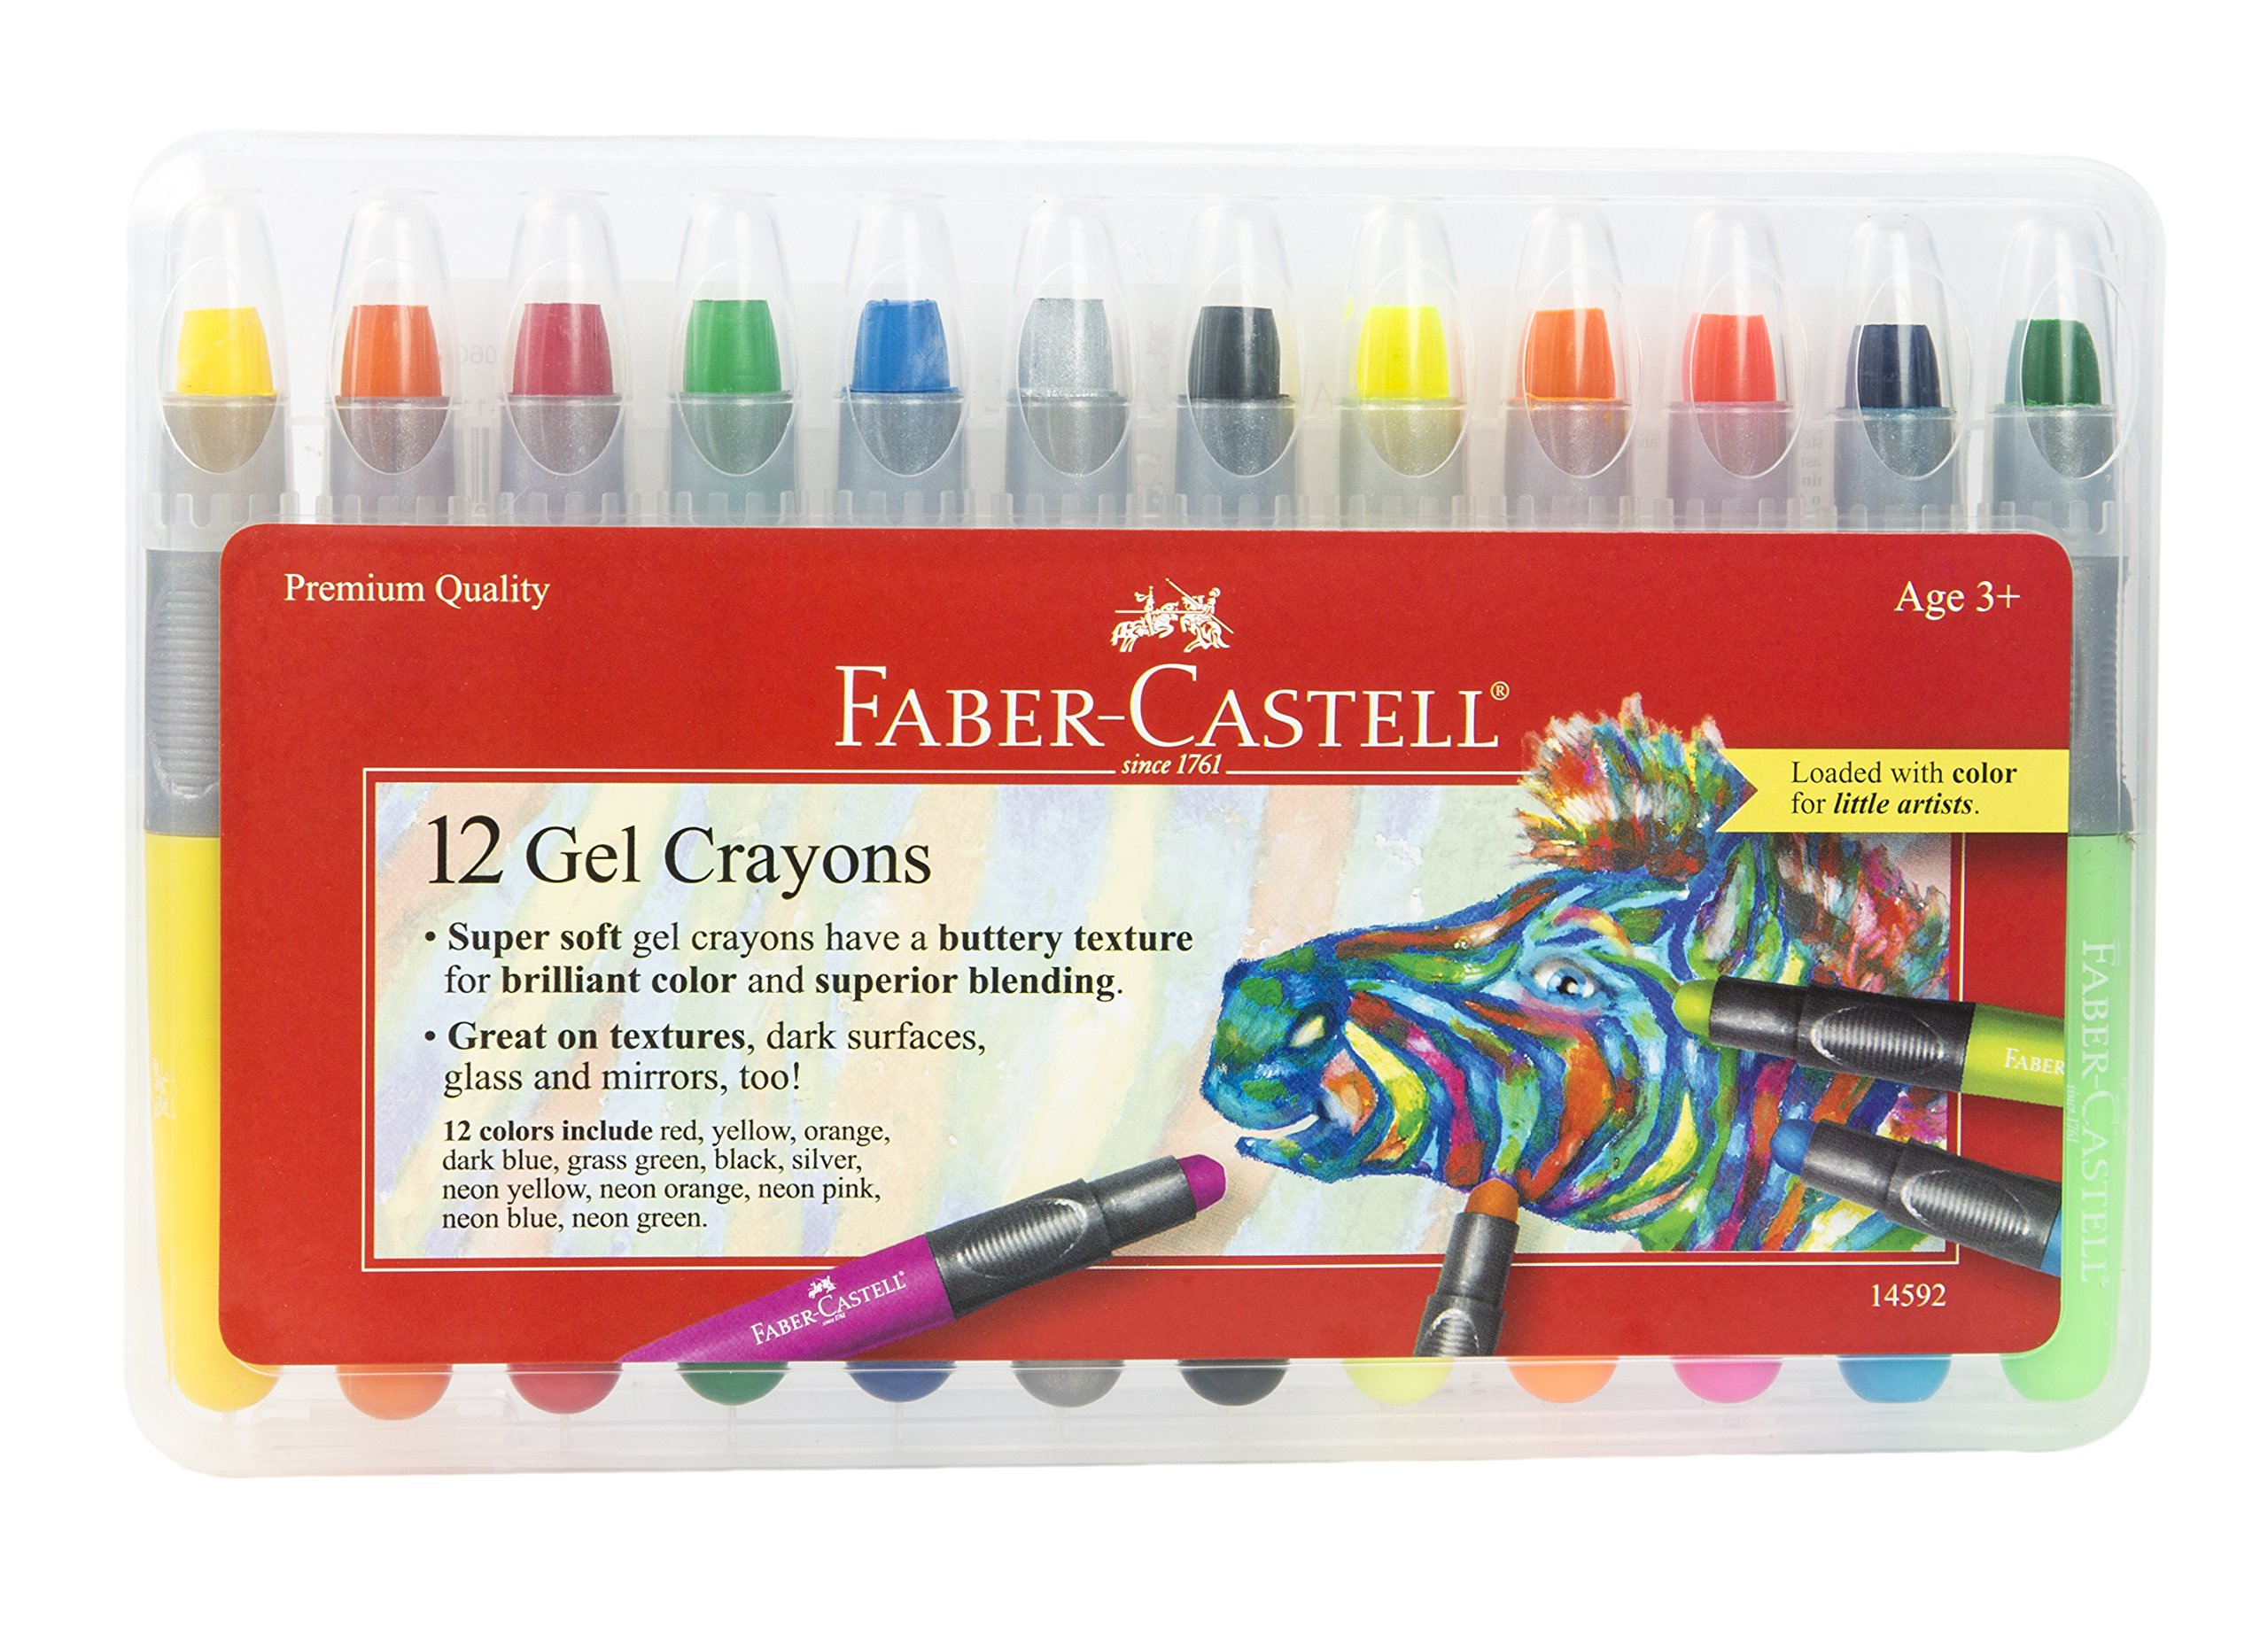 Faber-Castell Gel Crayons - 12 Vibrant Colors In Durable Storage Case by Faber-Castell